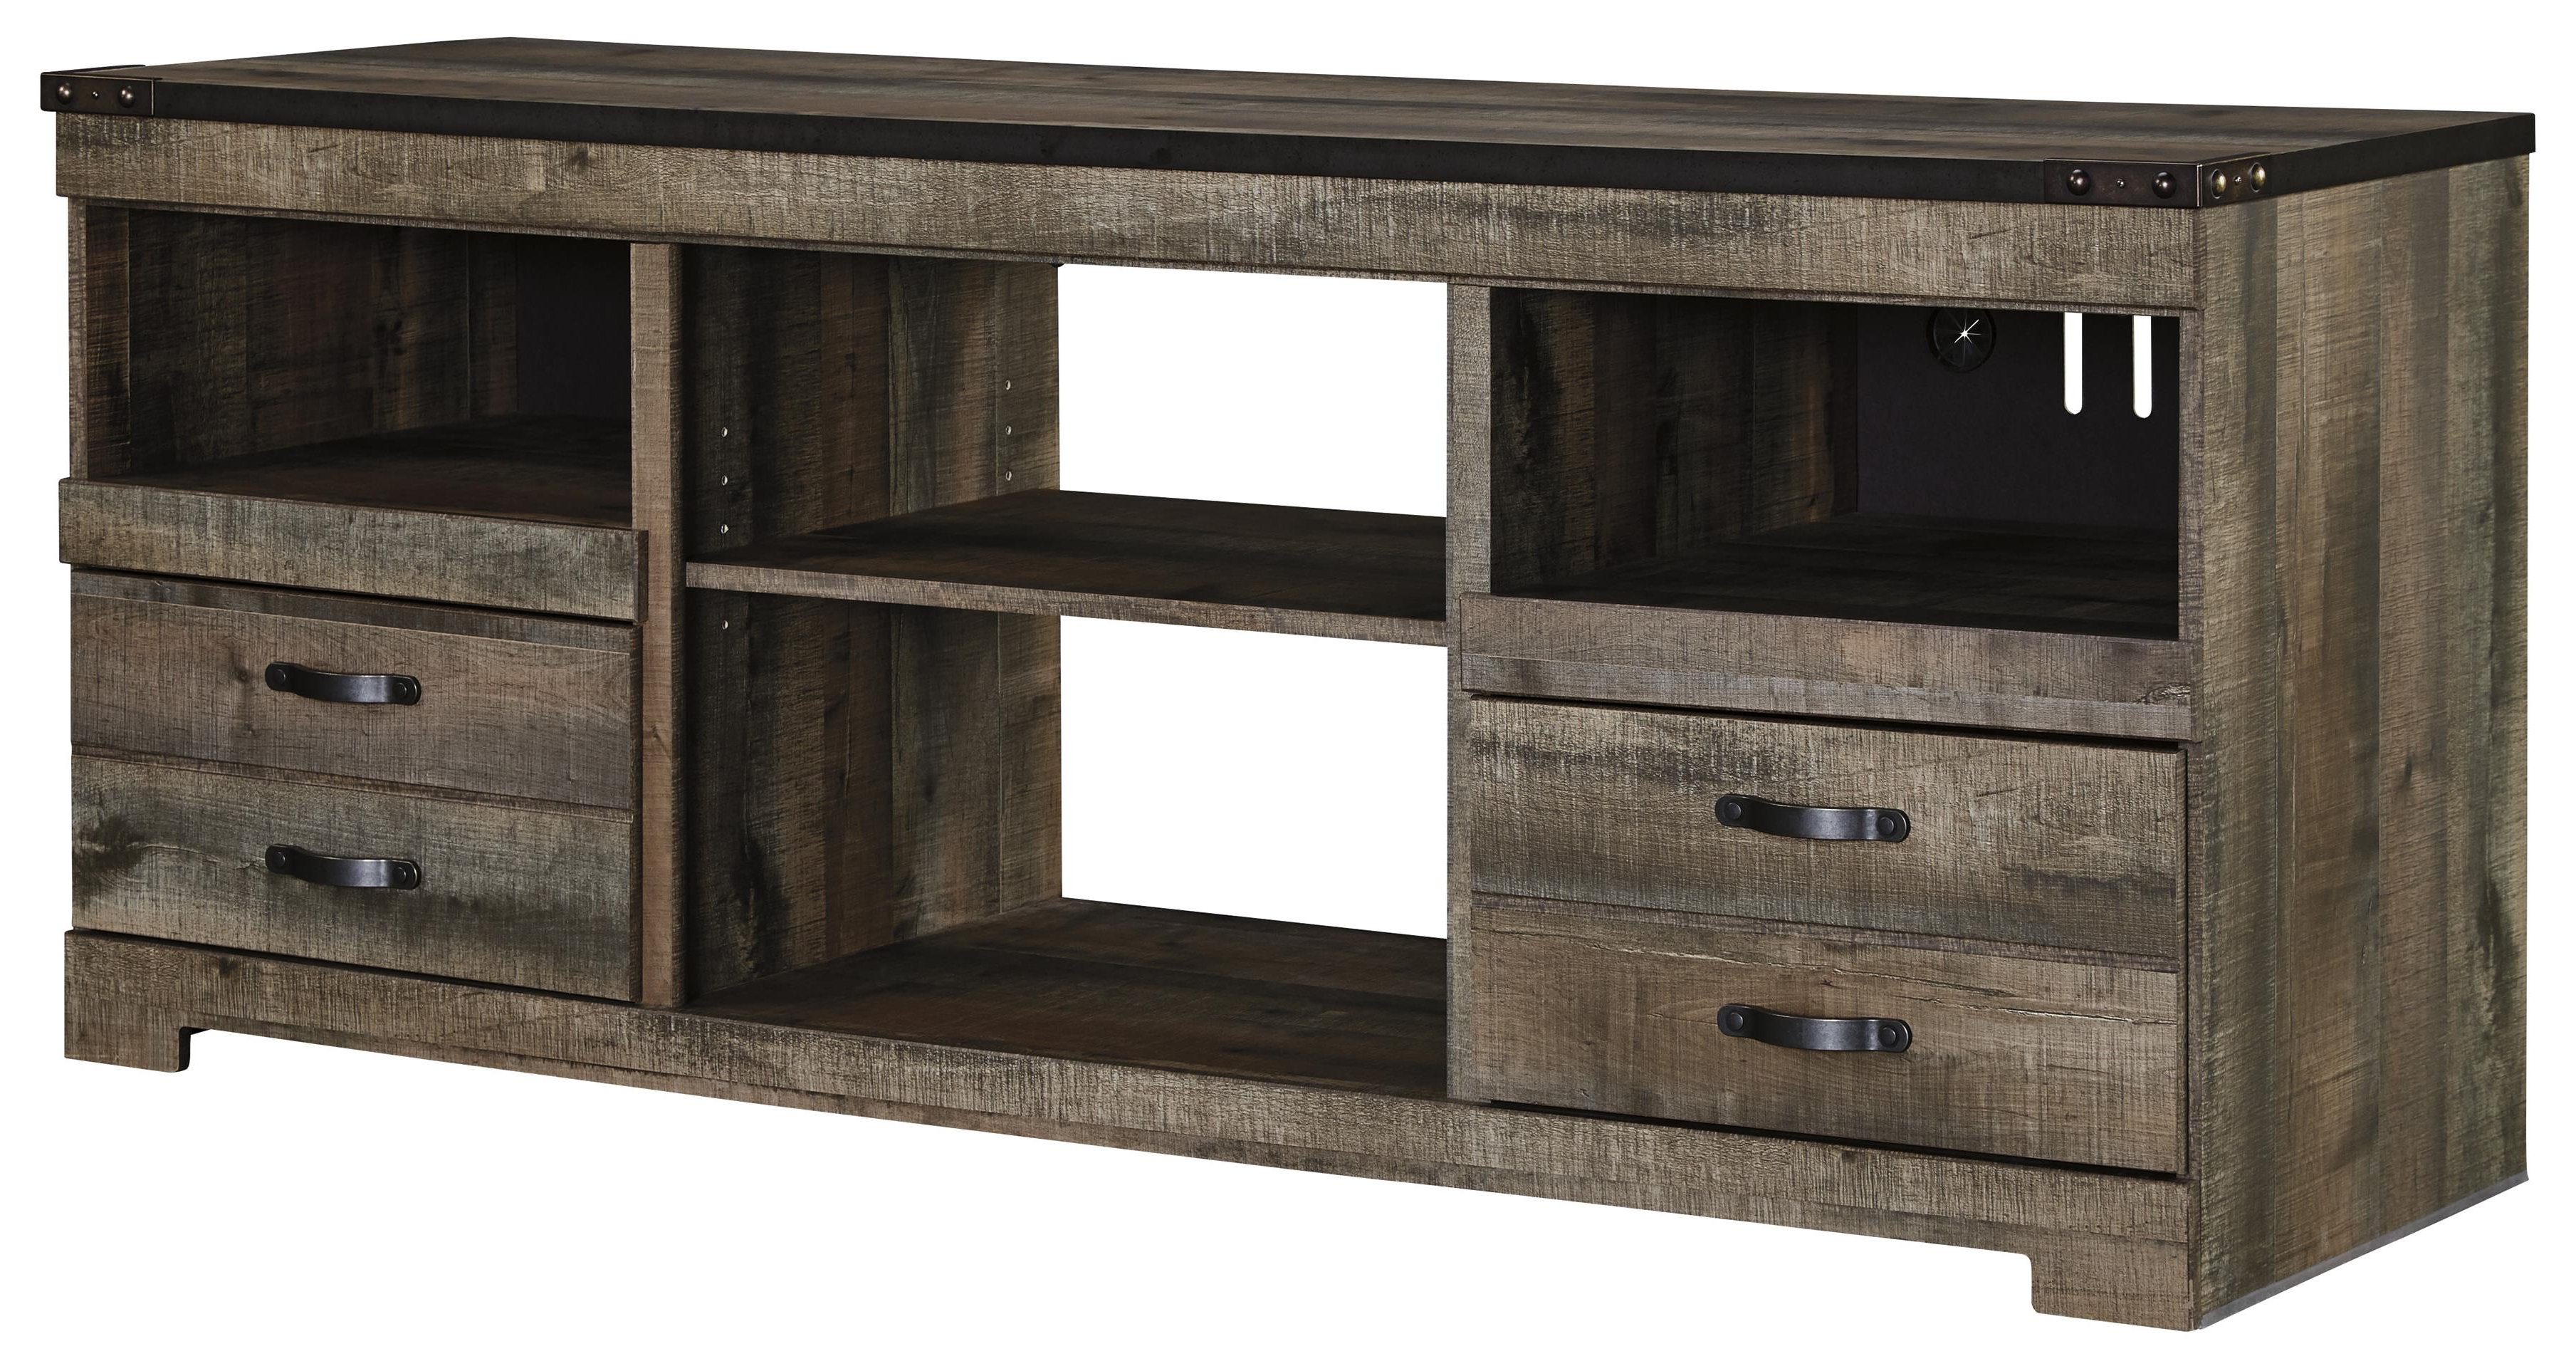 Signature Designashley Trinell Rustic Large Tv Stand With Metal Regarding Famous Rustic Tv Stands (Gallery 7 of 20)